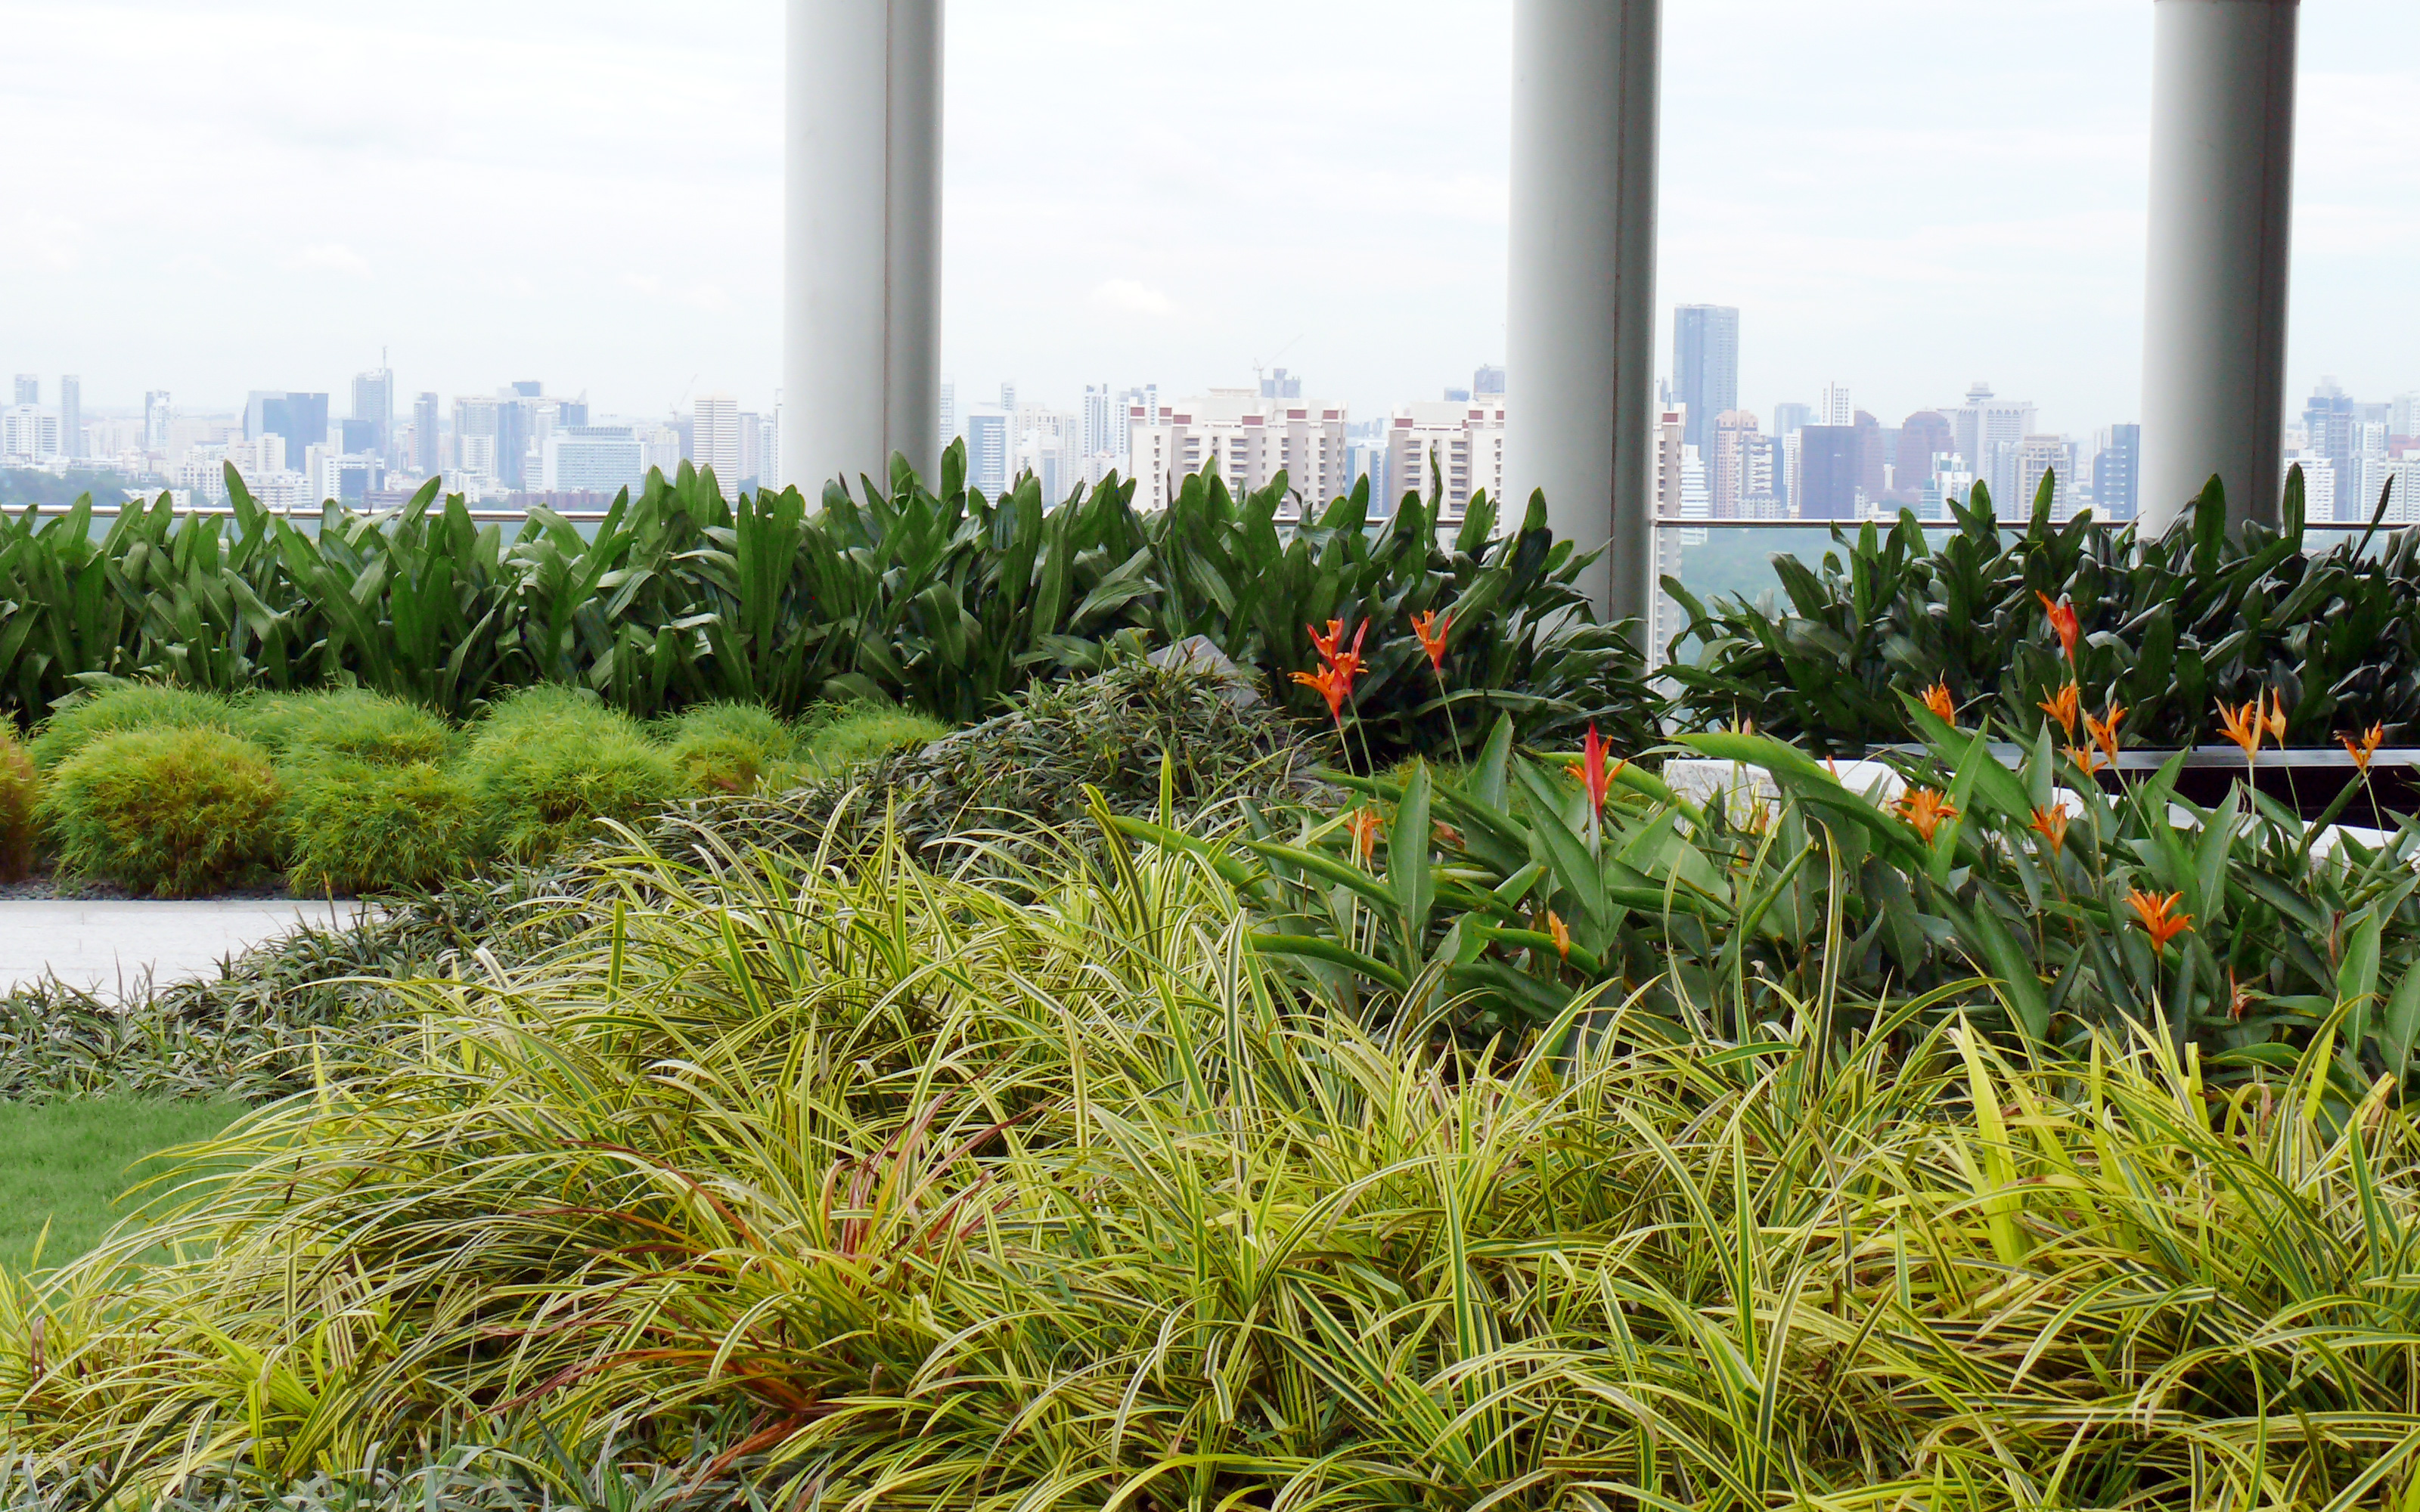 Roof garden with shrubs and small bushes